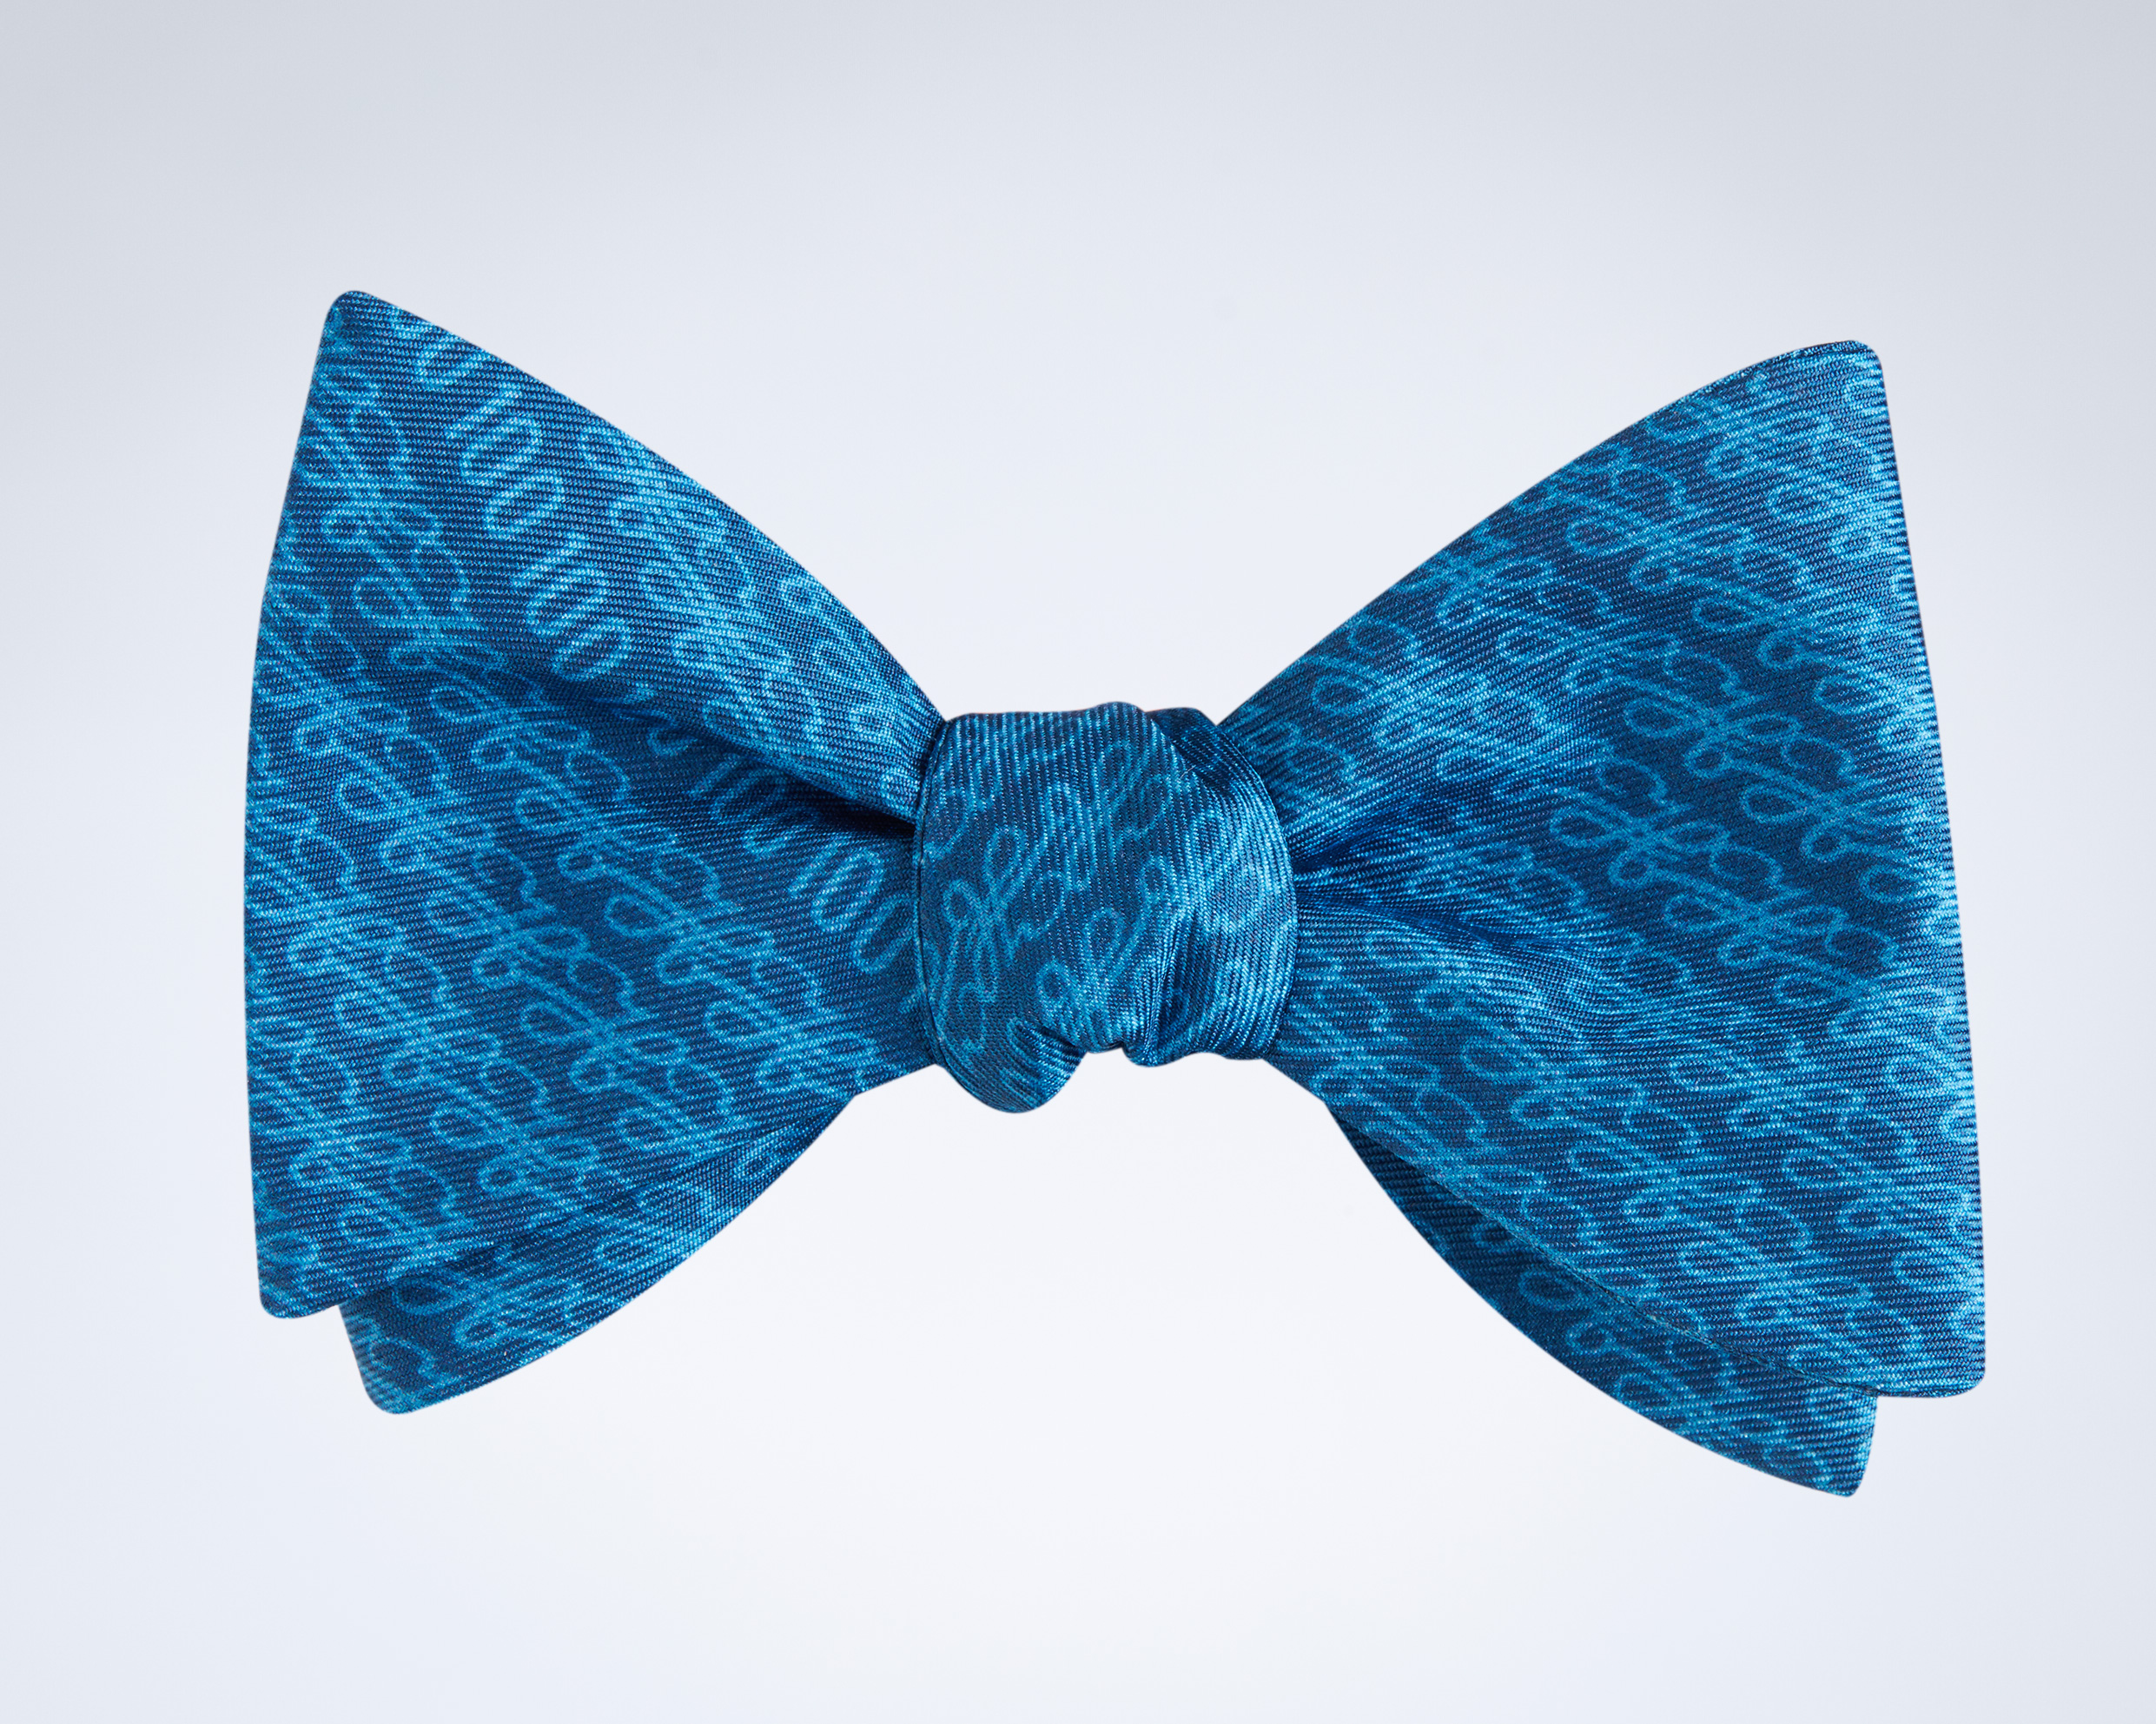 Henry Ford Health System – BowTie Cause